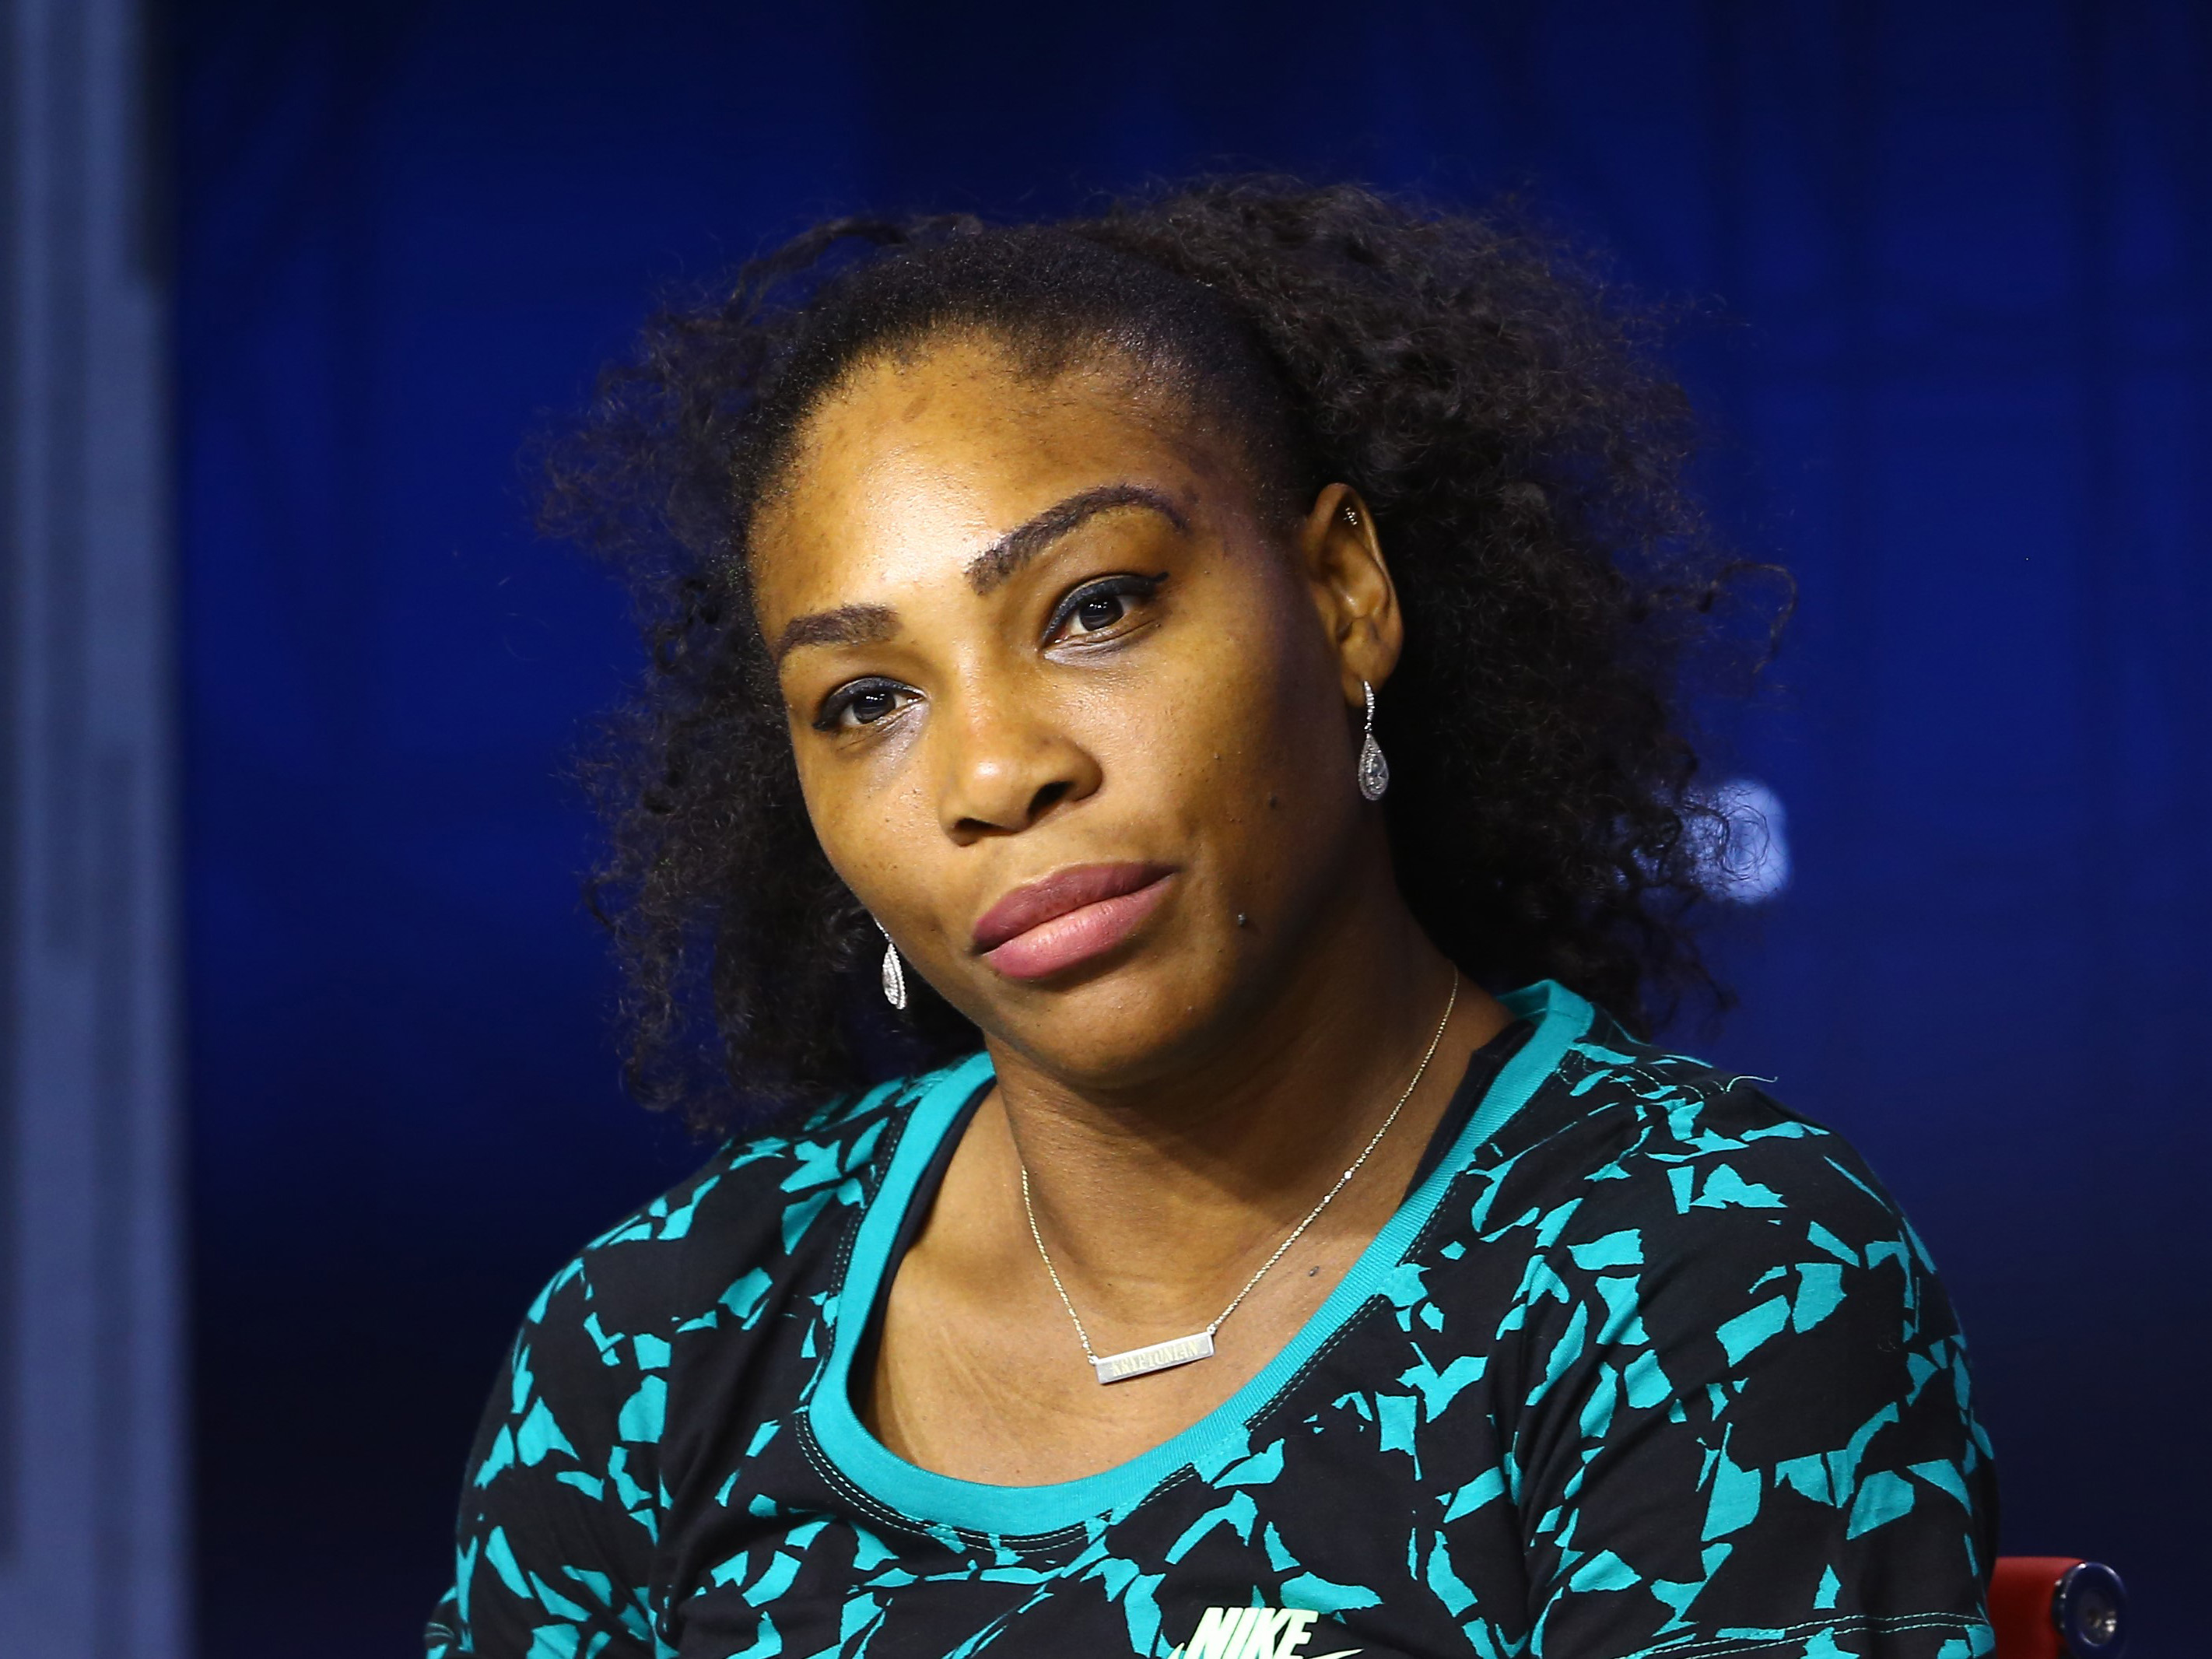 Serena Williams press conference: 2016 US Open